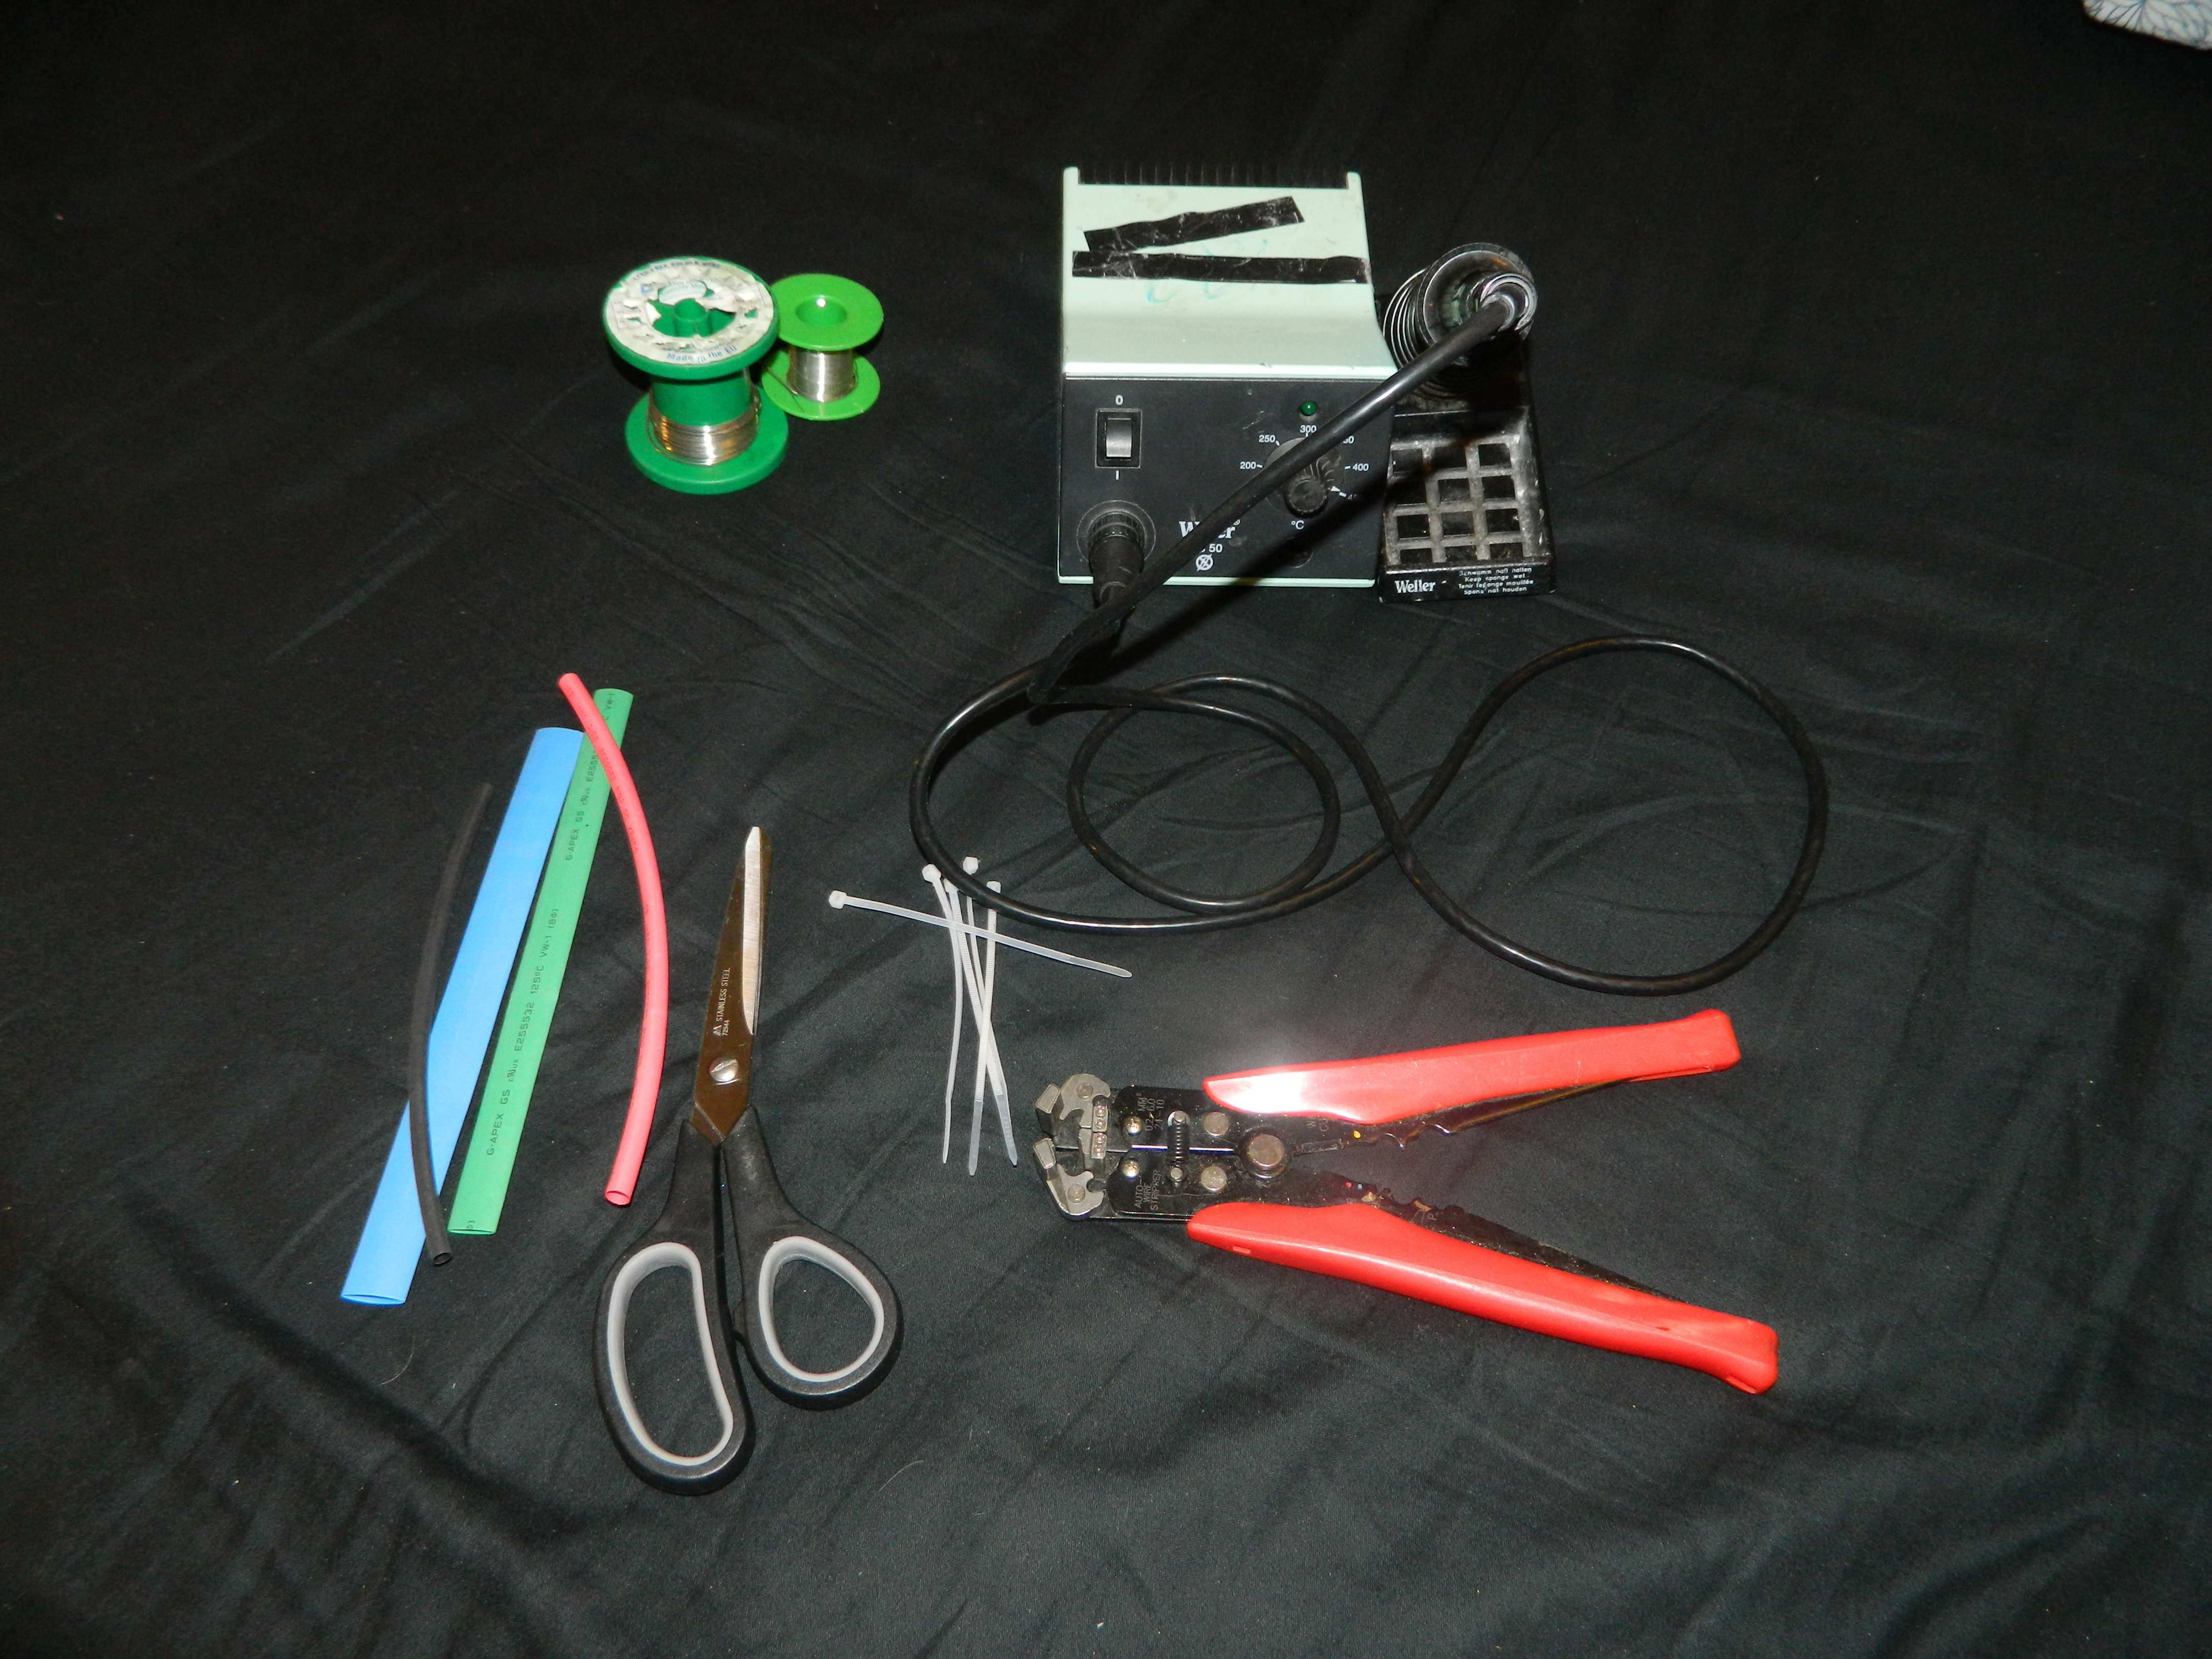 Picture of Tools and Equipment Needed